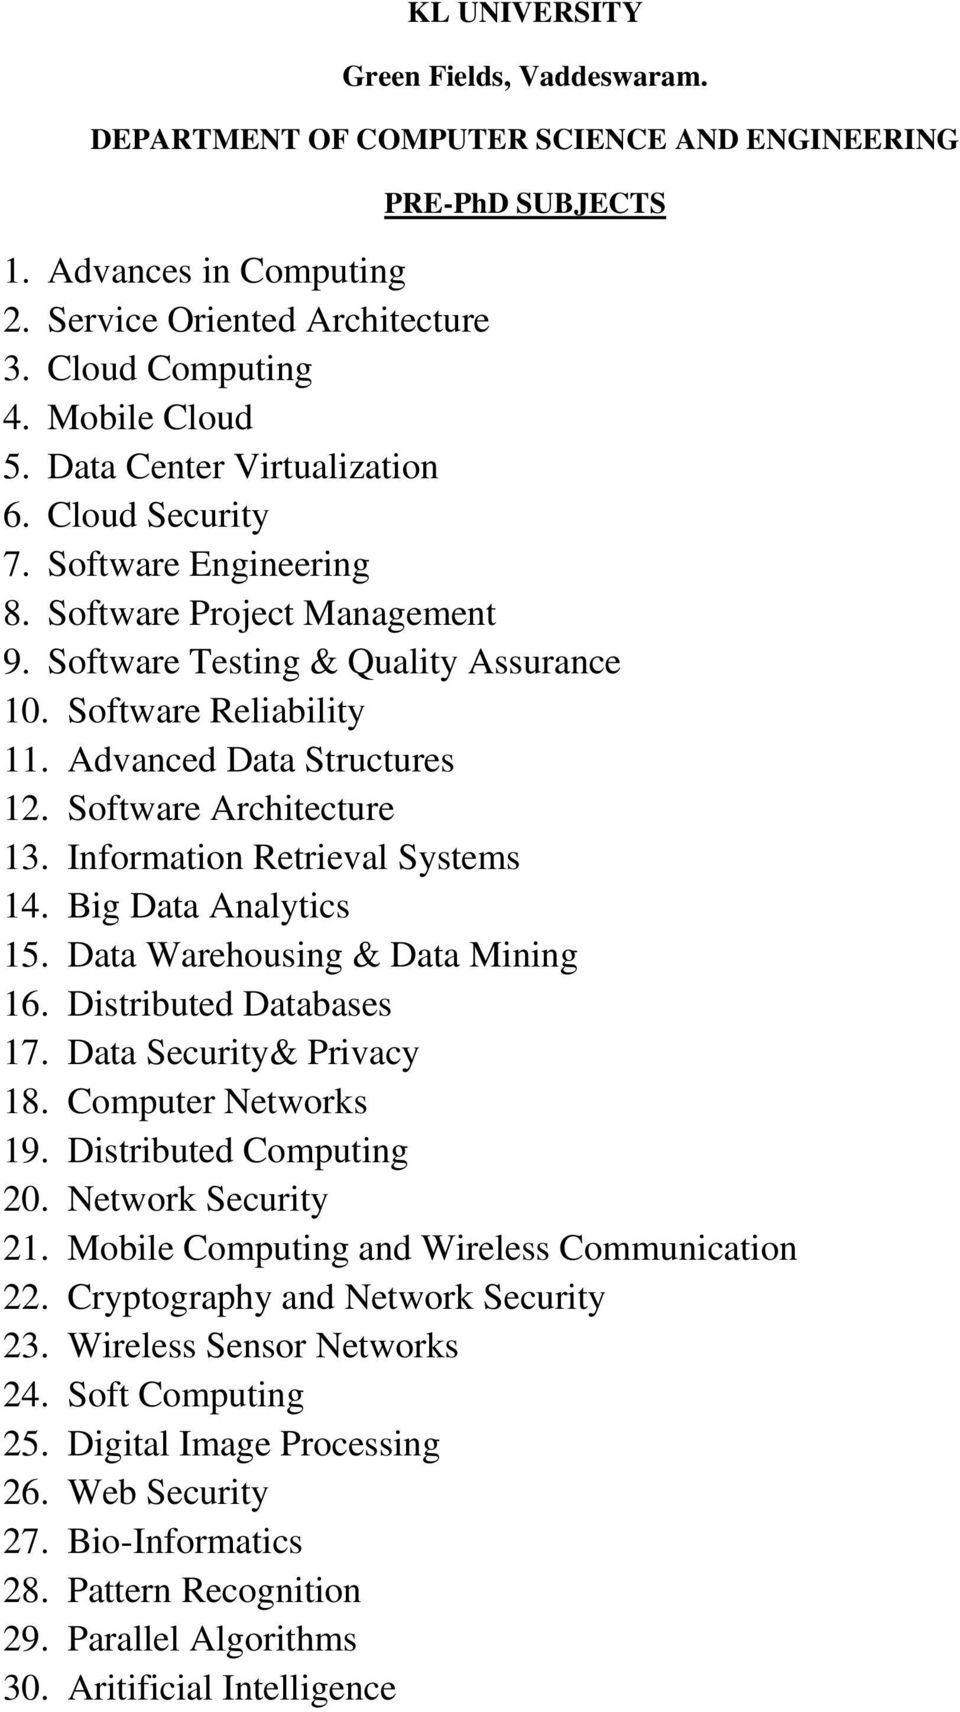 Software Architecture 13. Information Retrieval Systems 14. Big Data Analytics 15. Data Warehousing & Data Mining 16. Distributed Databases 17. Data Security& Privacy 18. Computer Networks 19.